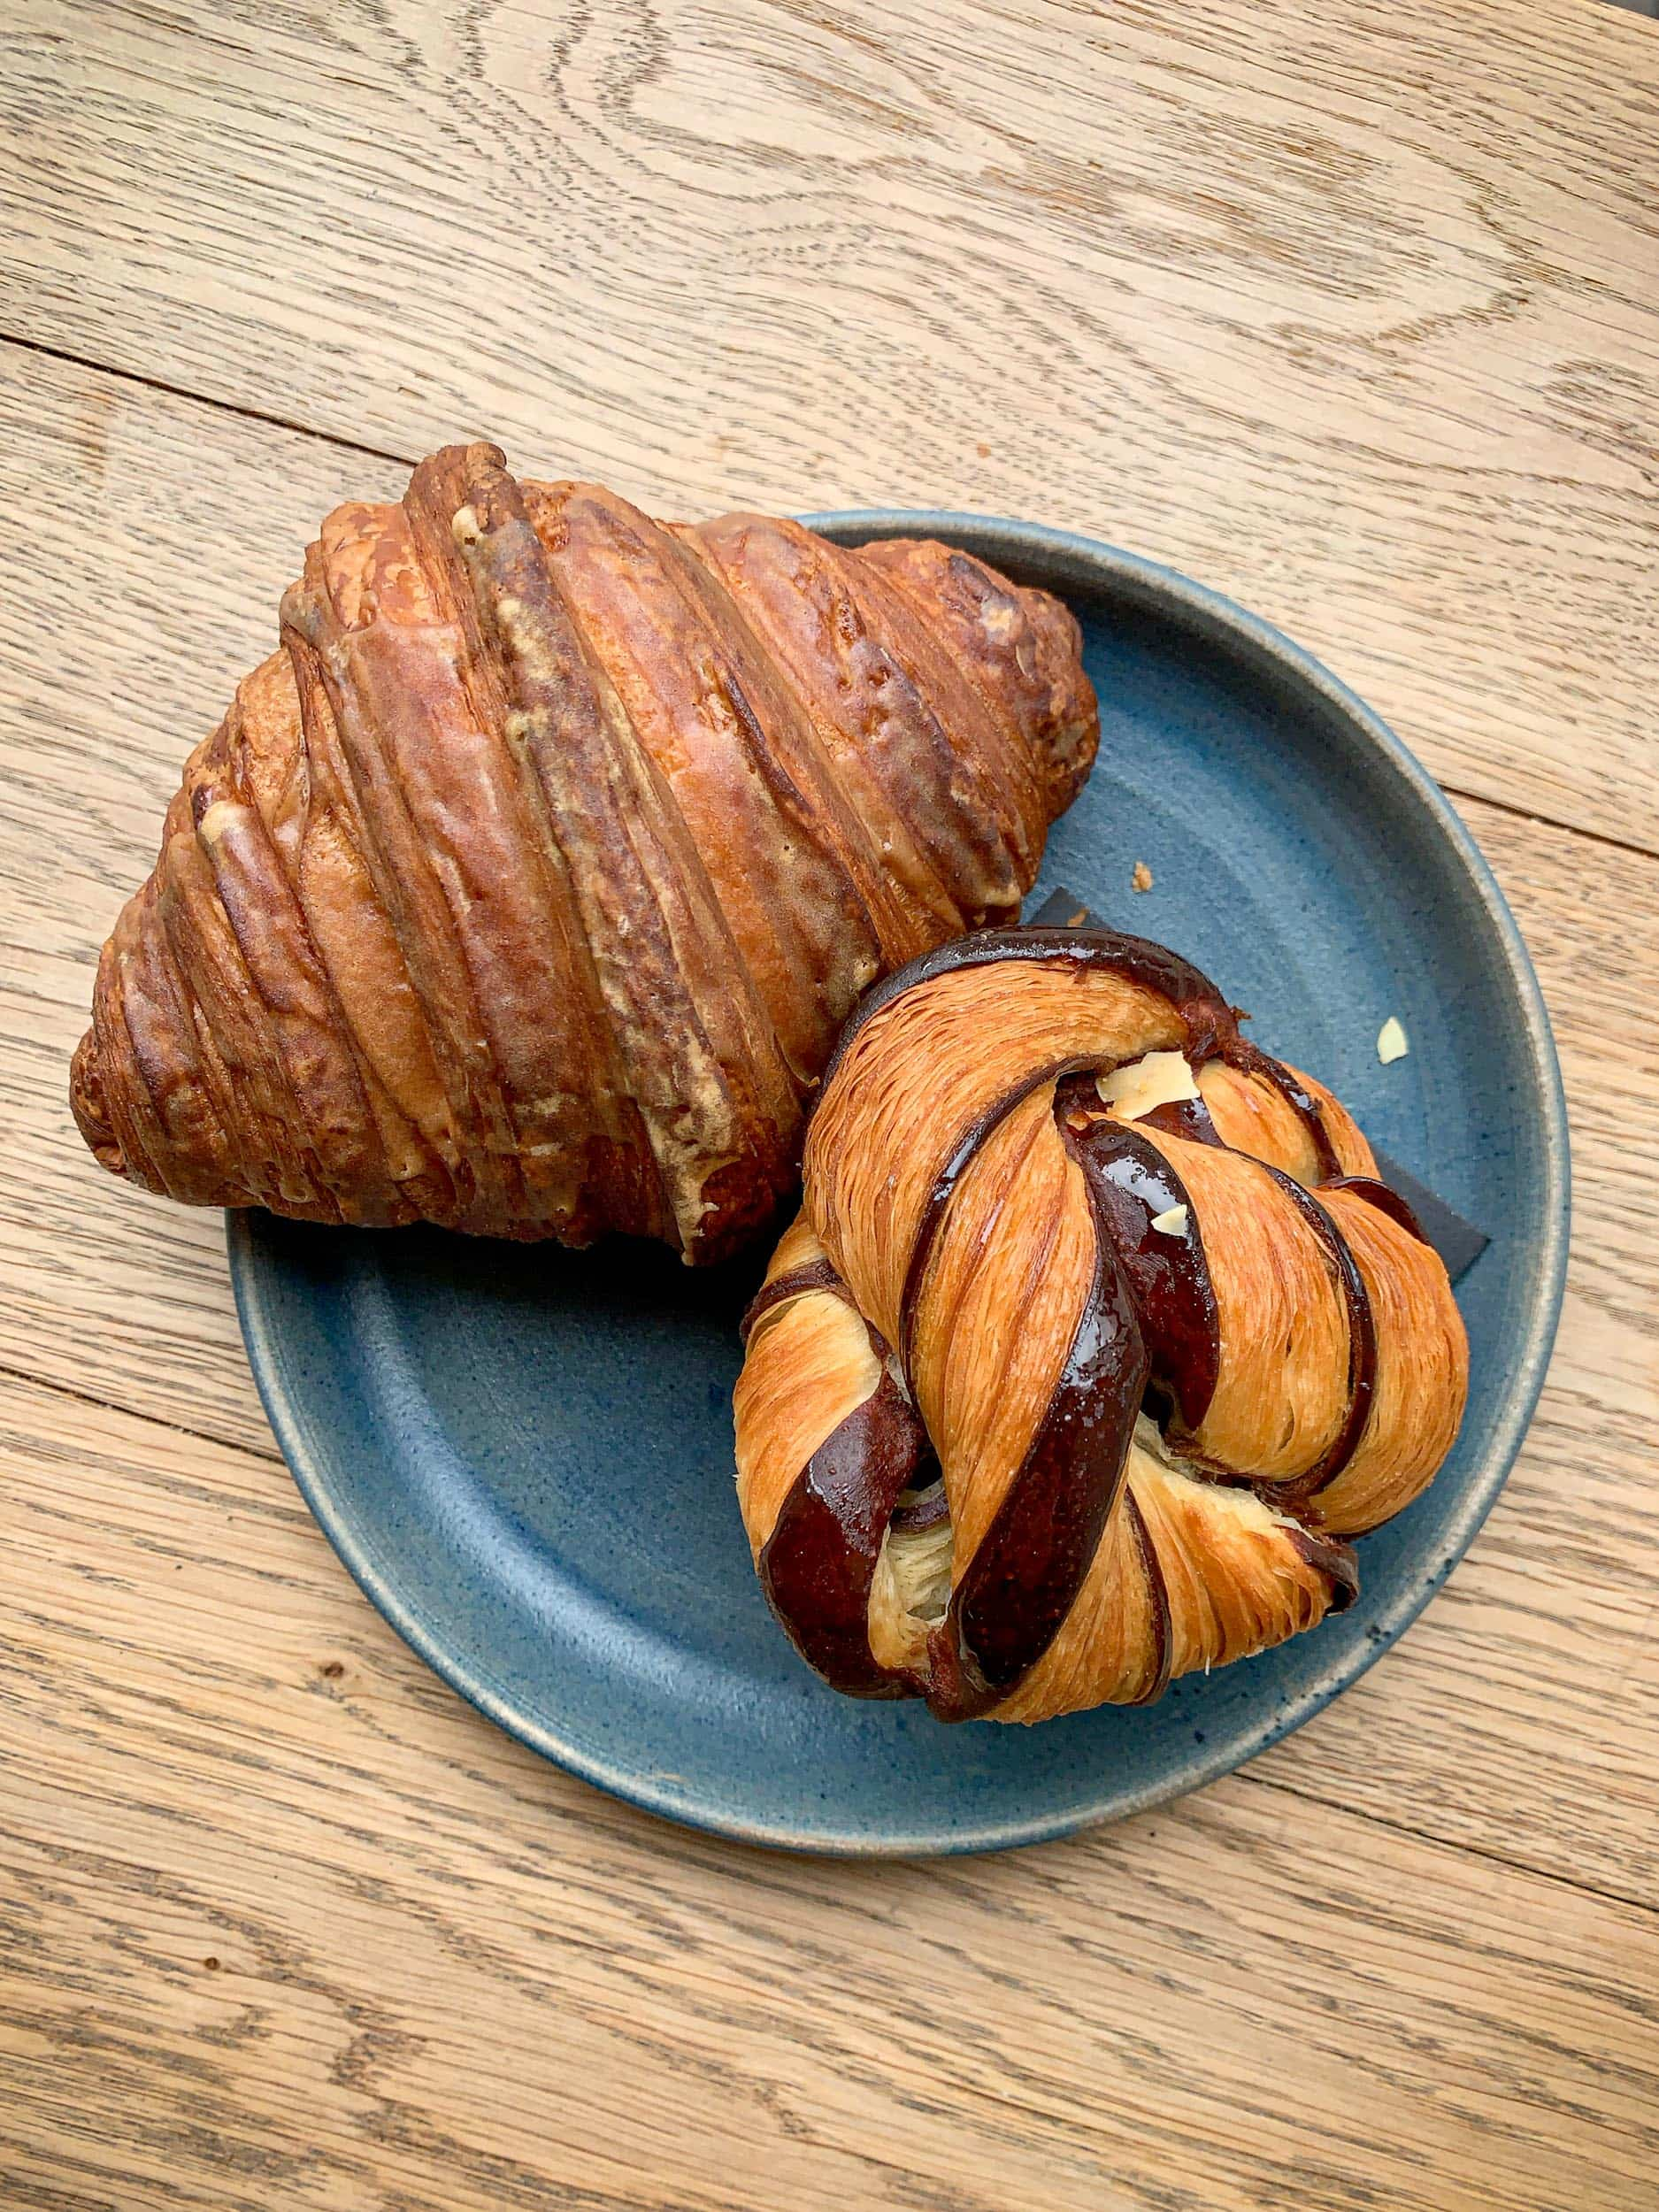 Espresso croissant and chocolate swirl croissant at Andersen & Maillard